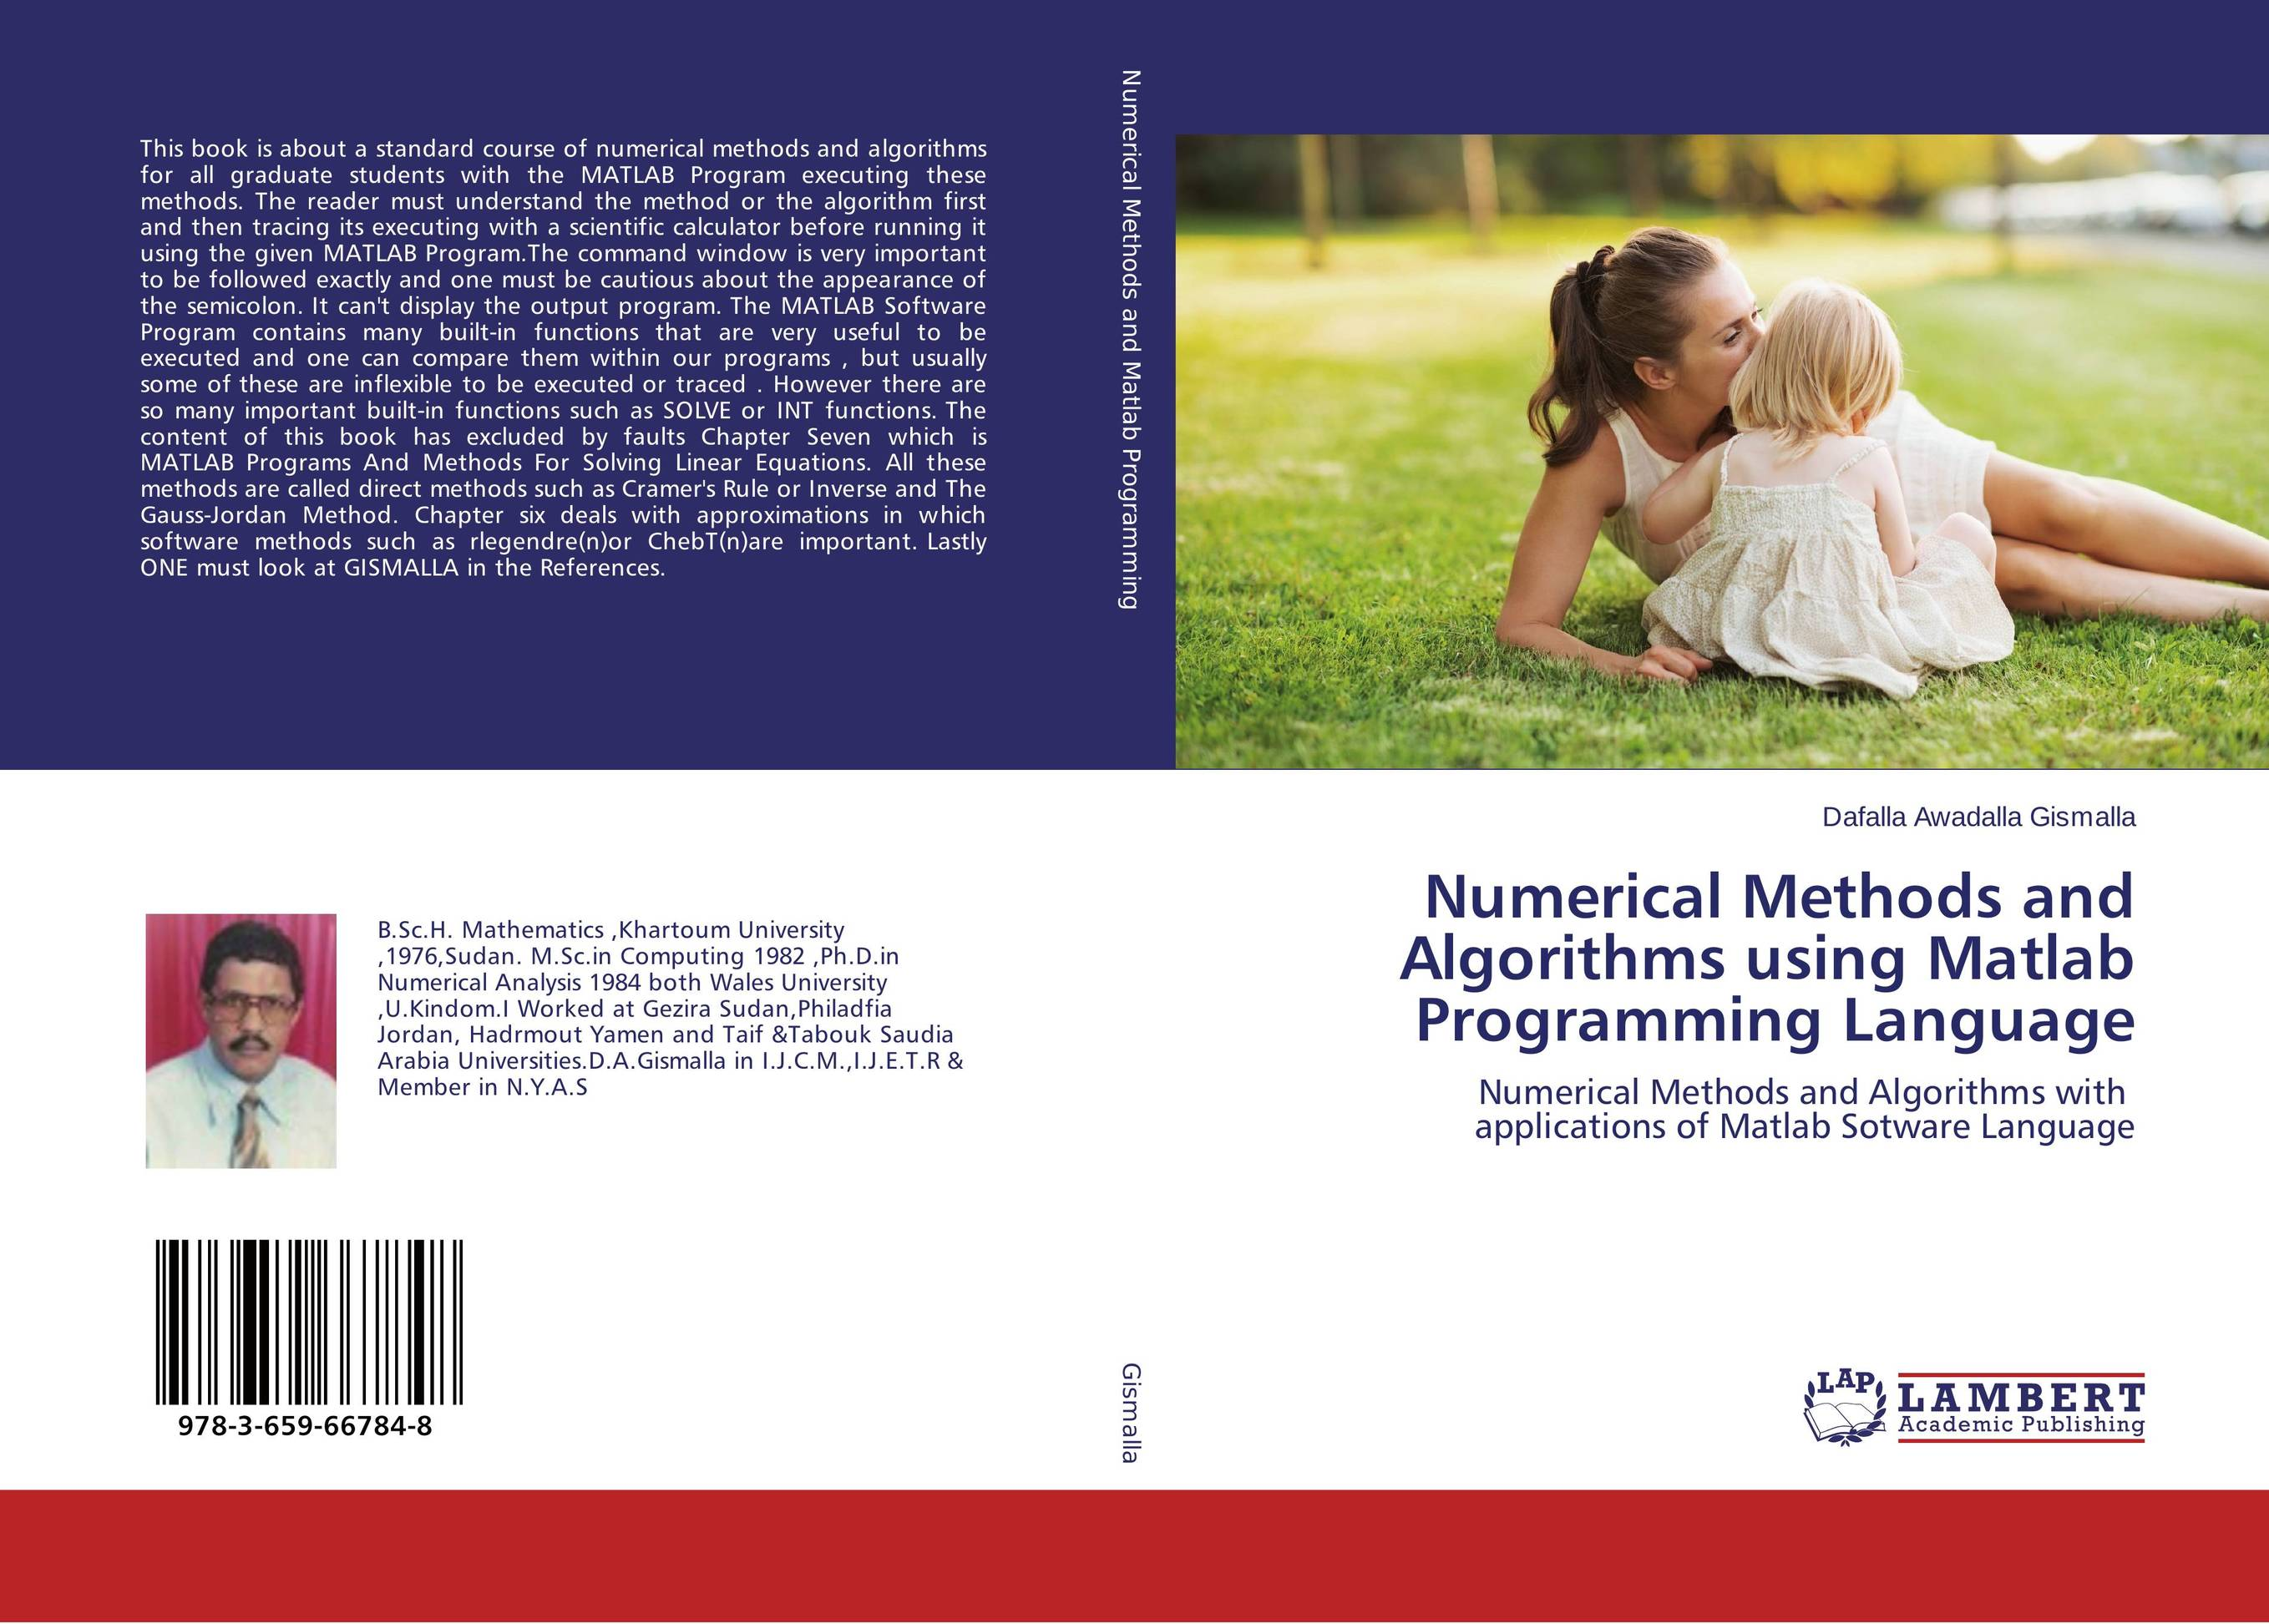 Numerical Methods and Algorithms using Matlab Programming Language купить